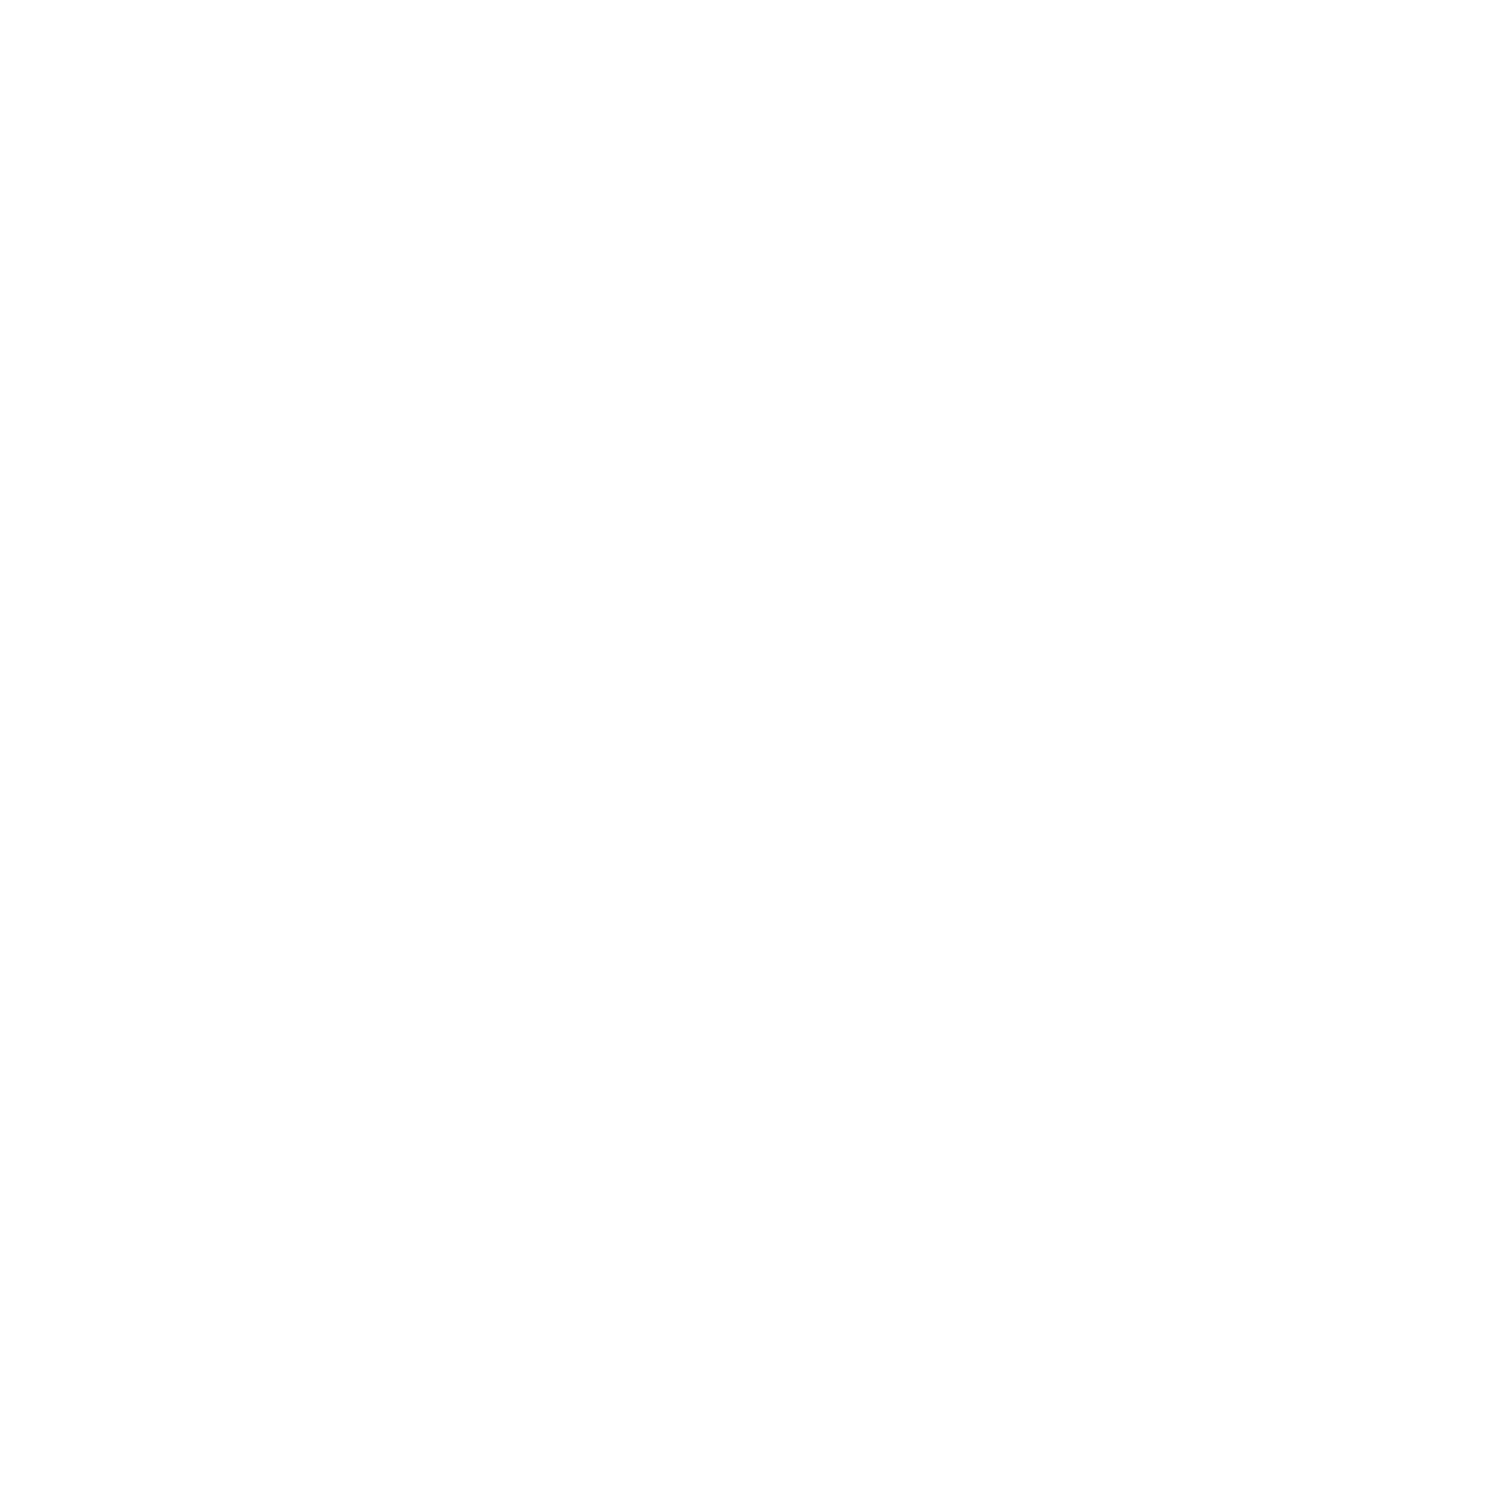 Total Love Makeover